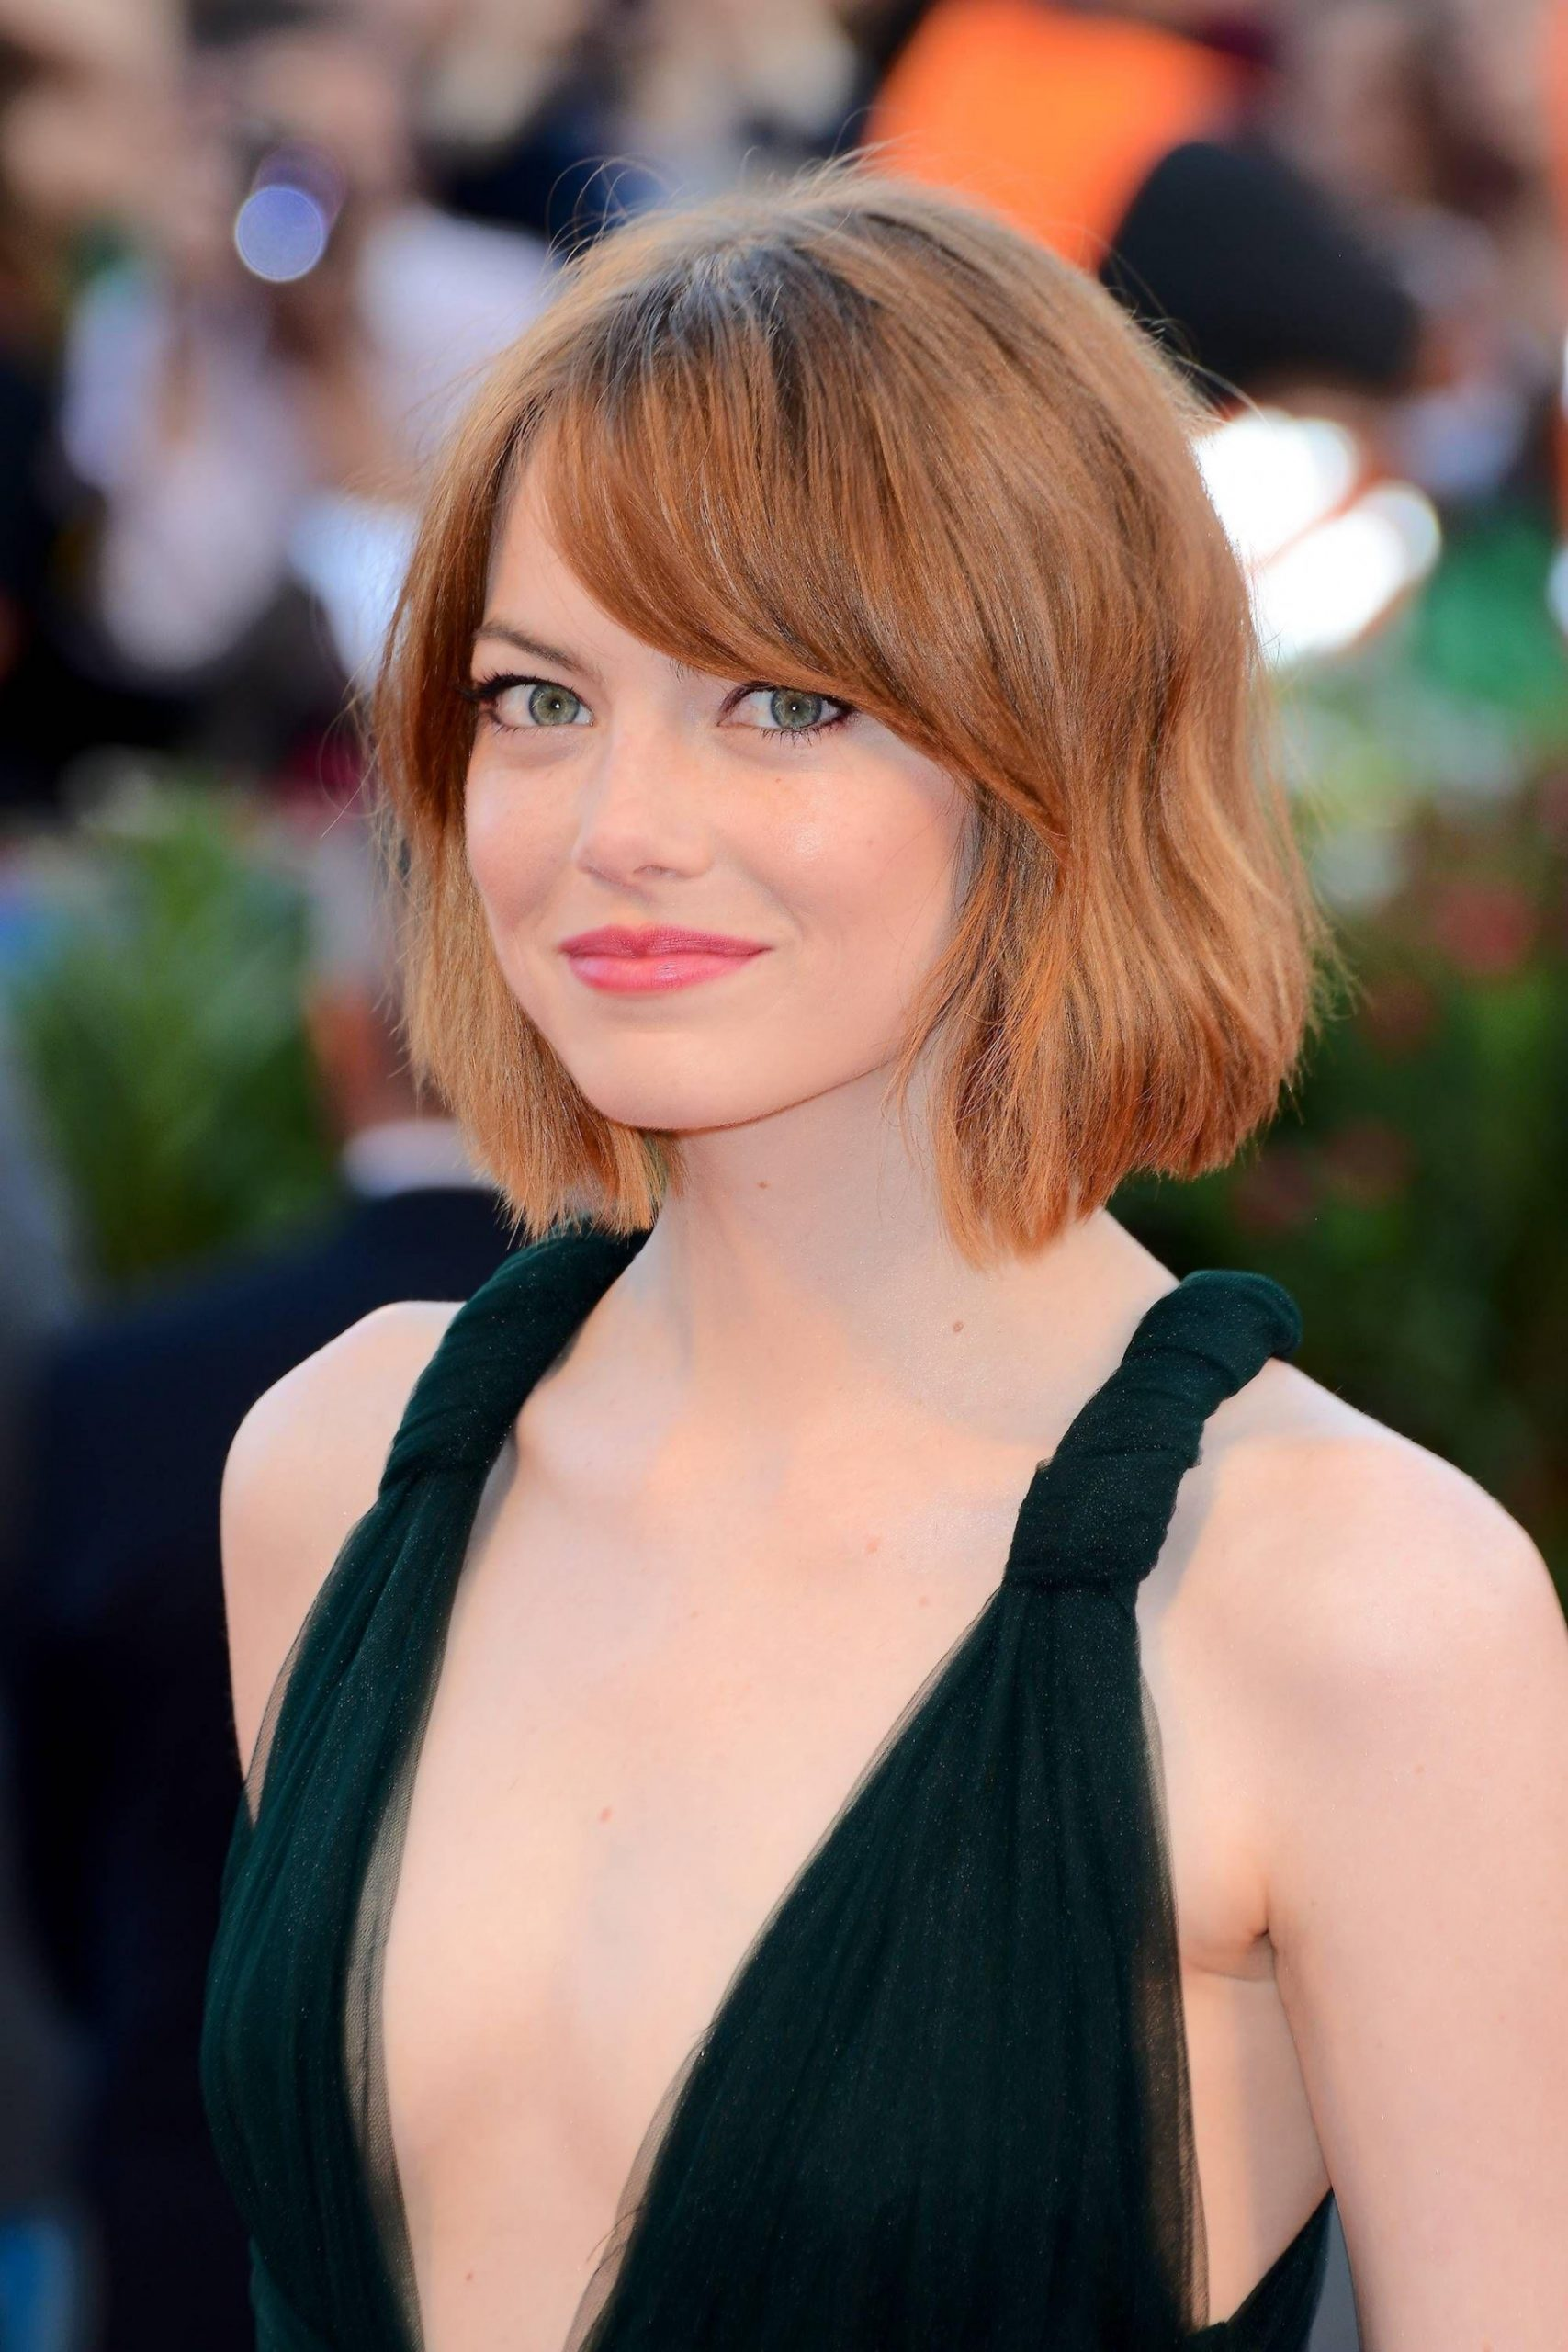 11 Flattering Ways To Pull Off Bangs For Round Face Shapes Side Bangs For Round Face